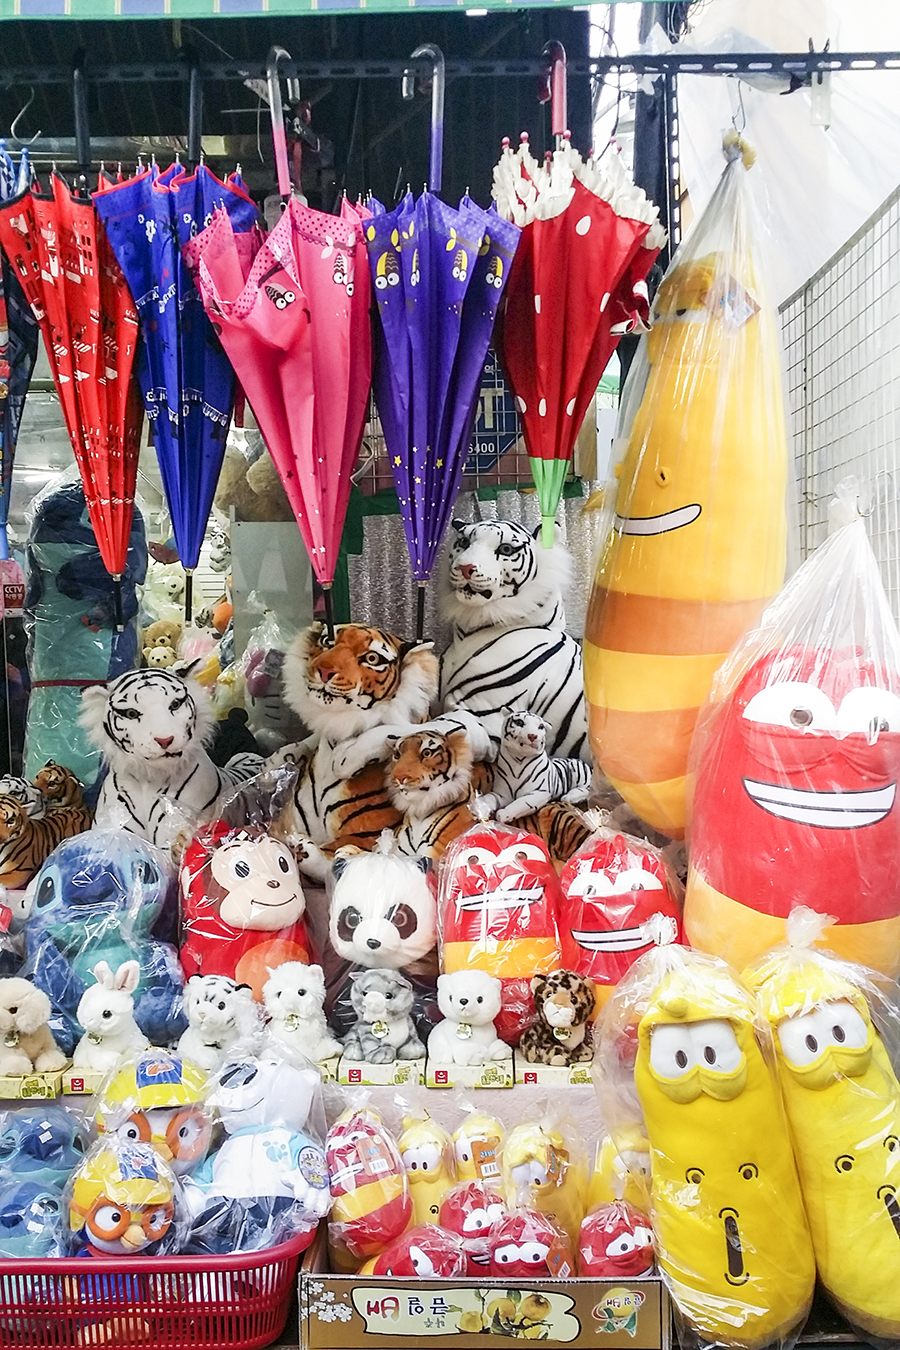 Toys and plushies on display in Dongdaemun market, Seoul, South Korea.